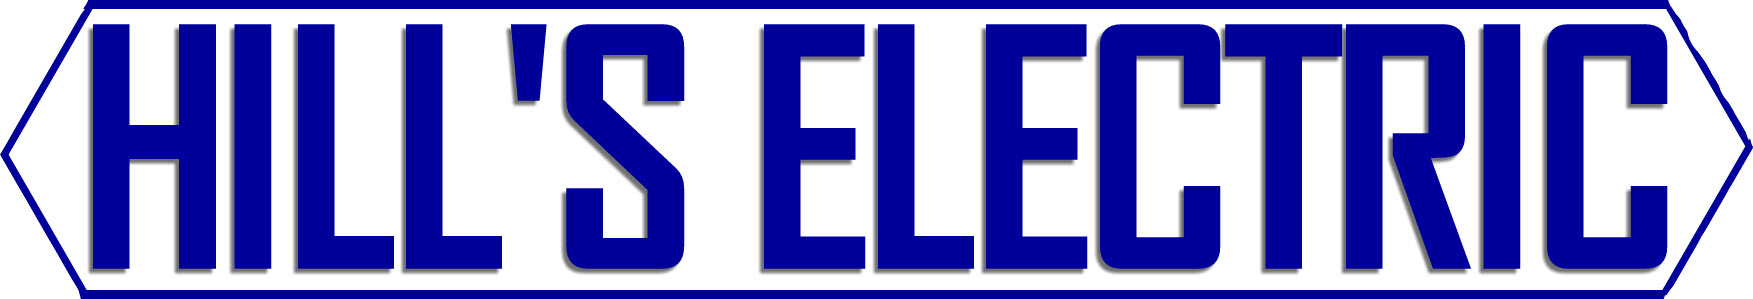 Hill's textonly logo